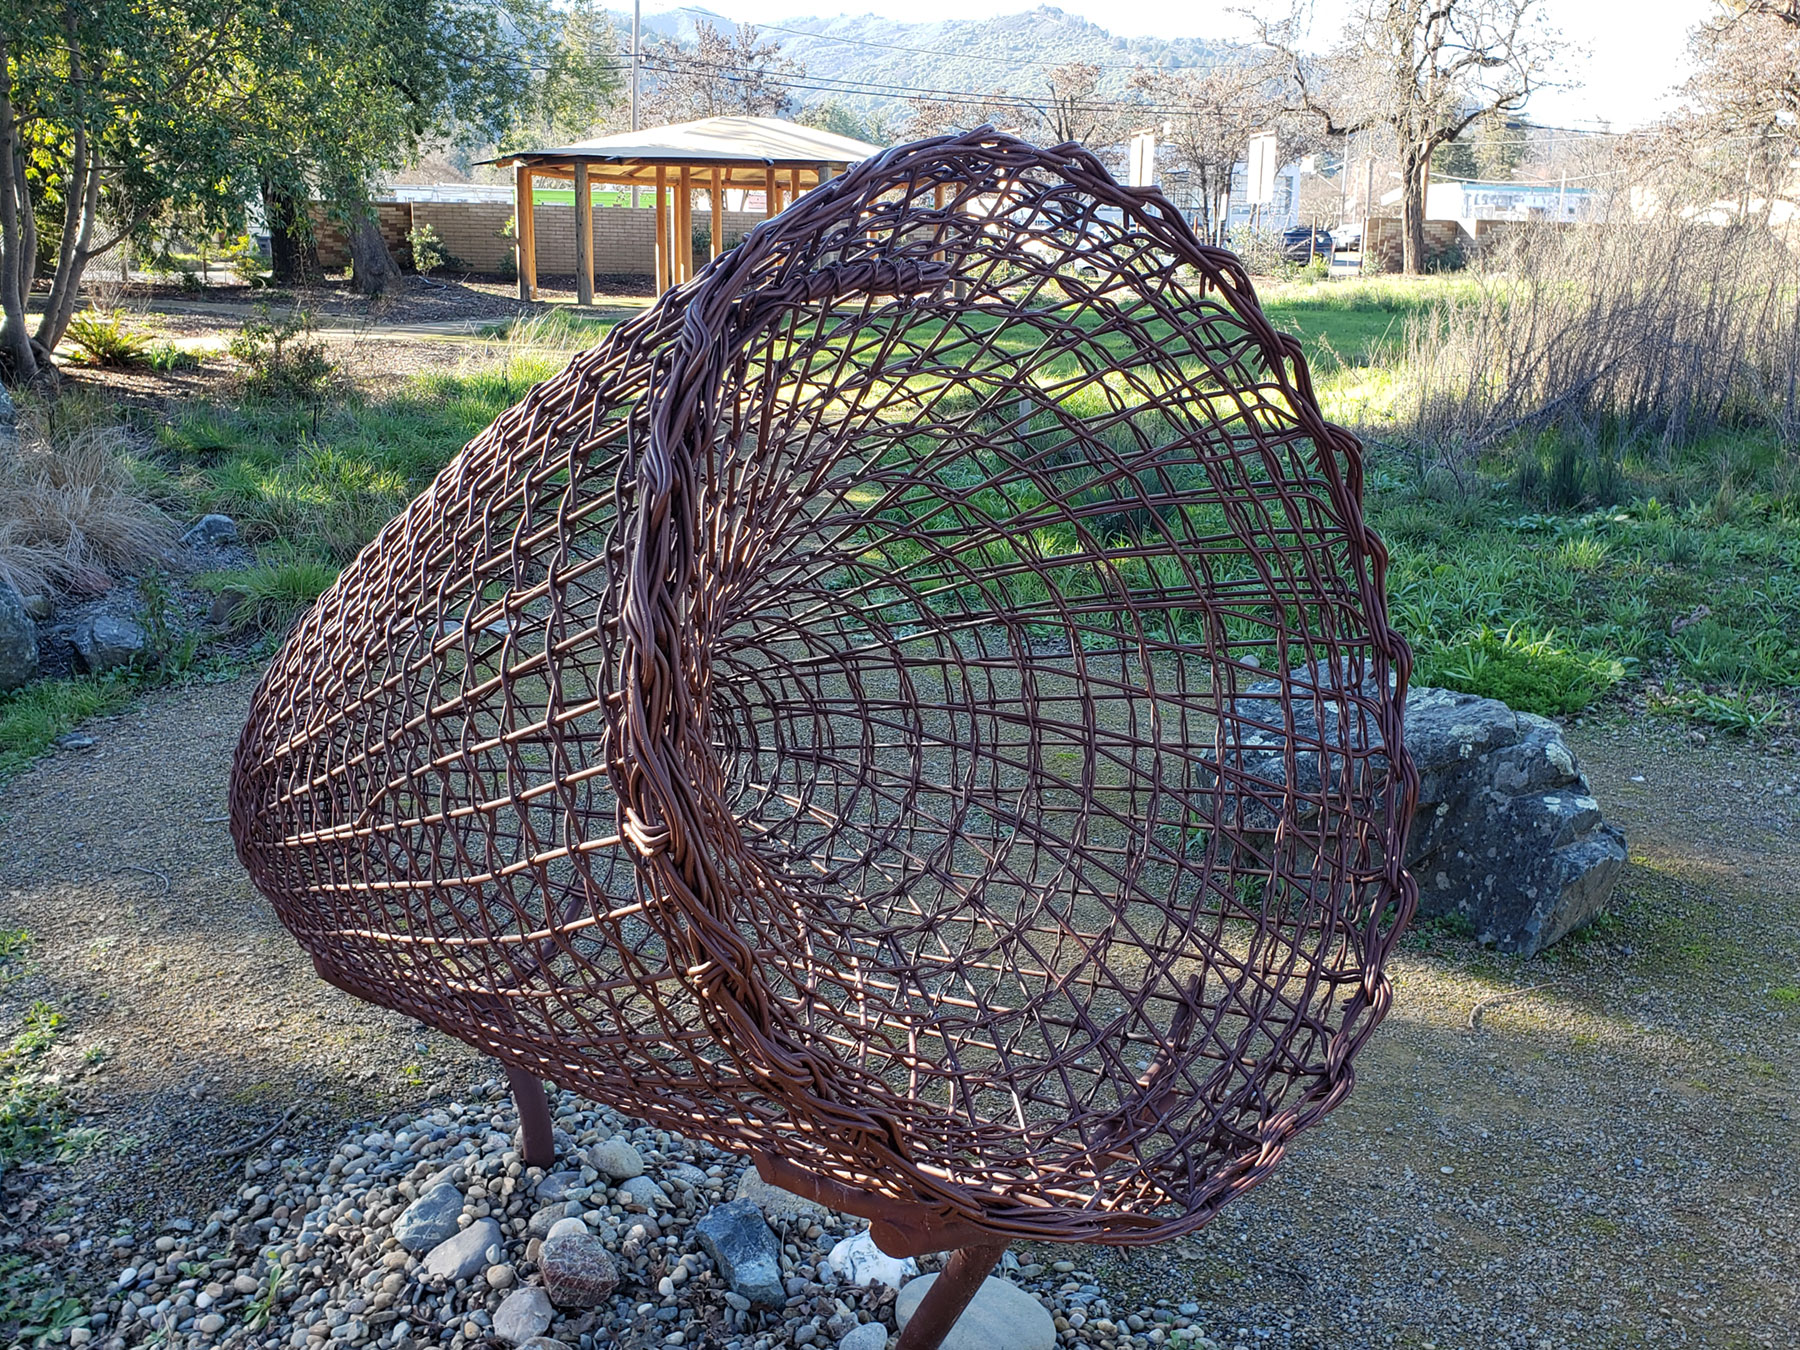 A metal sculpture depicts the design used for a traditional fishing basket. Shoots from the Redbush plant are used in Pomo basket weaving